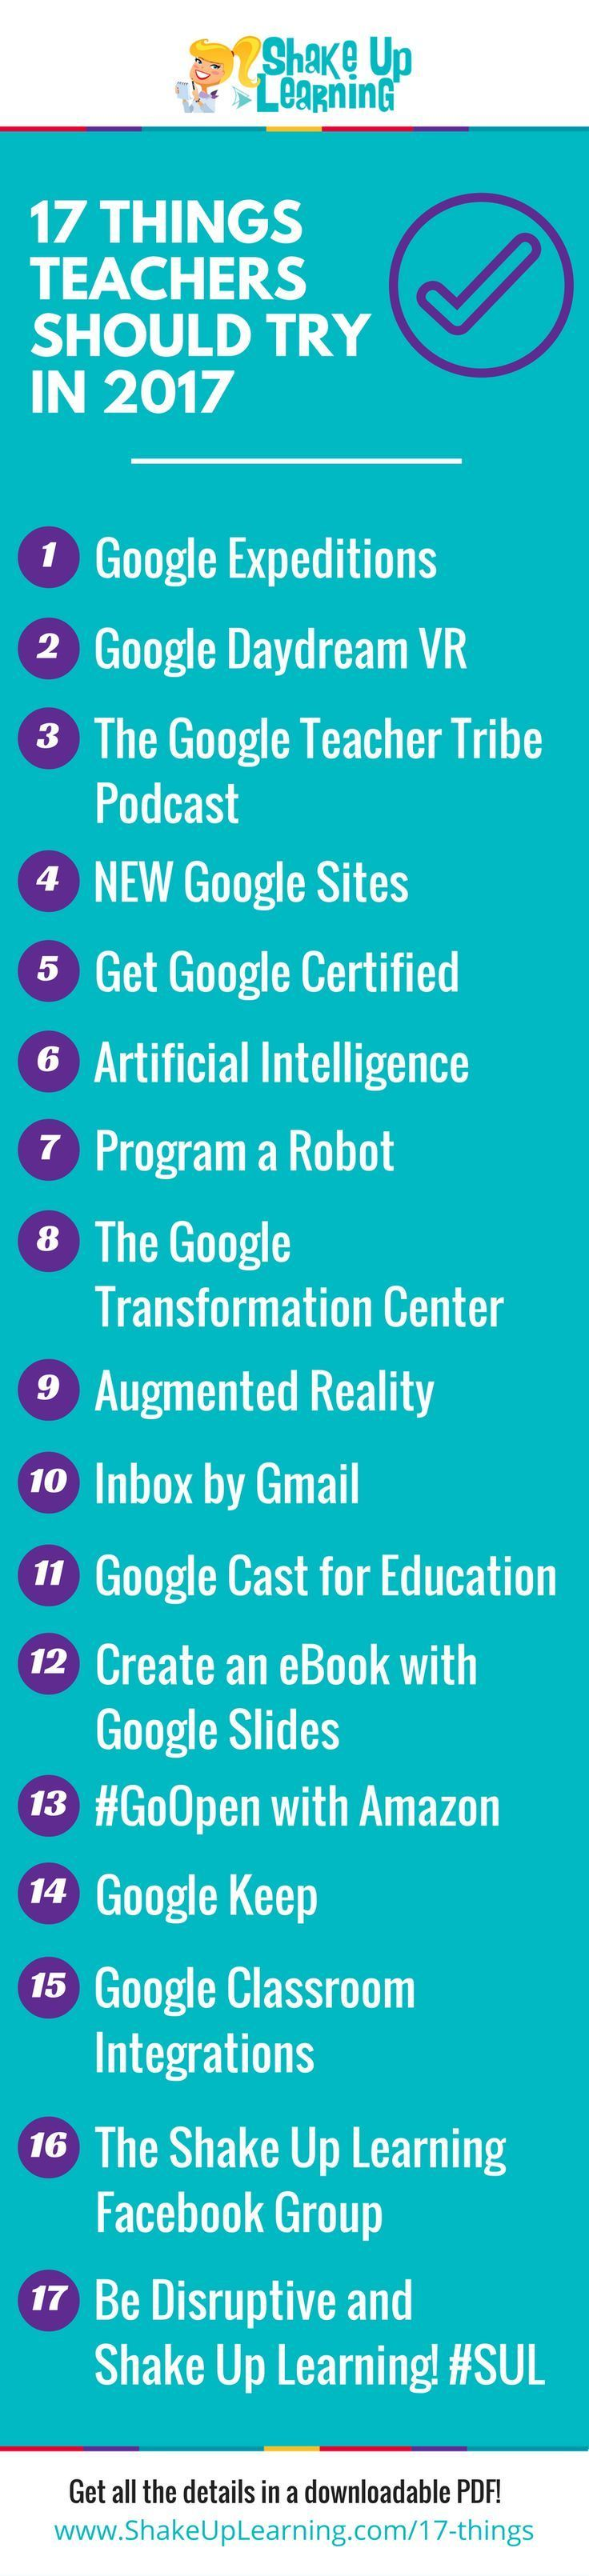 32 best The Latest Trends in EdTech images on Pinterest | Latest ...